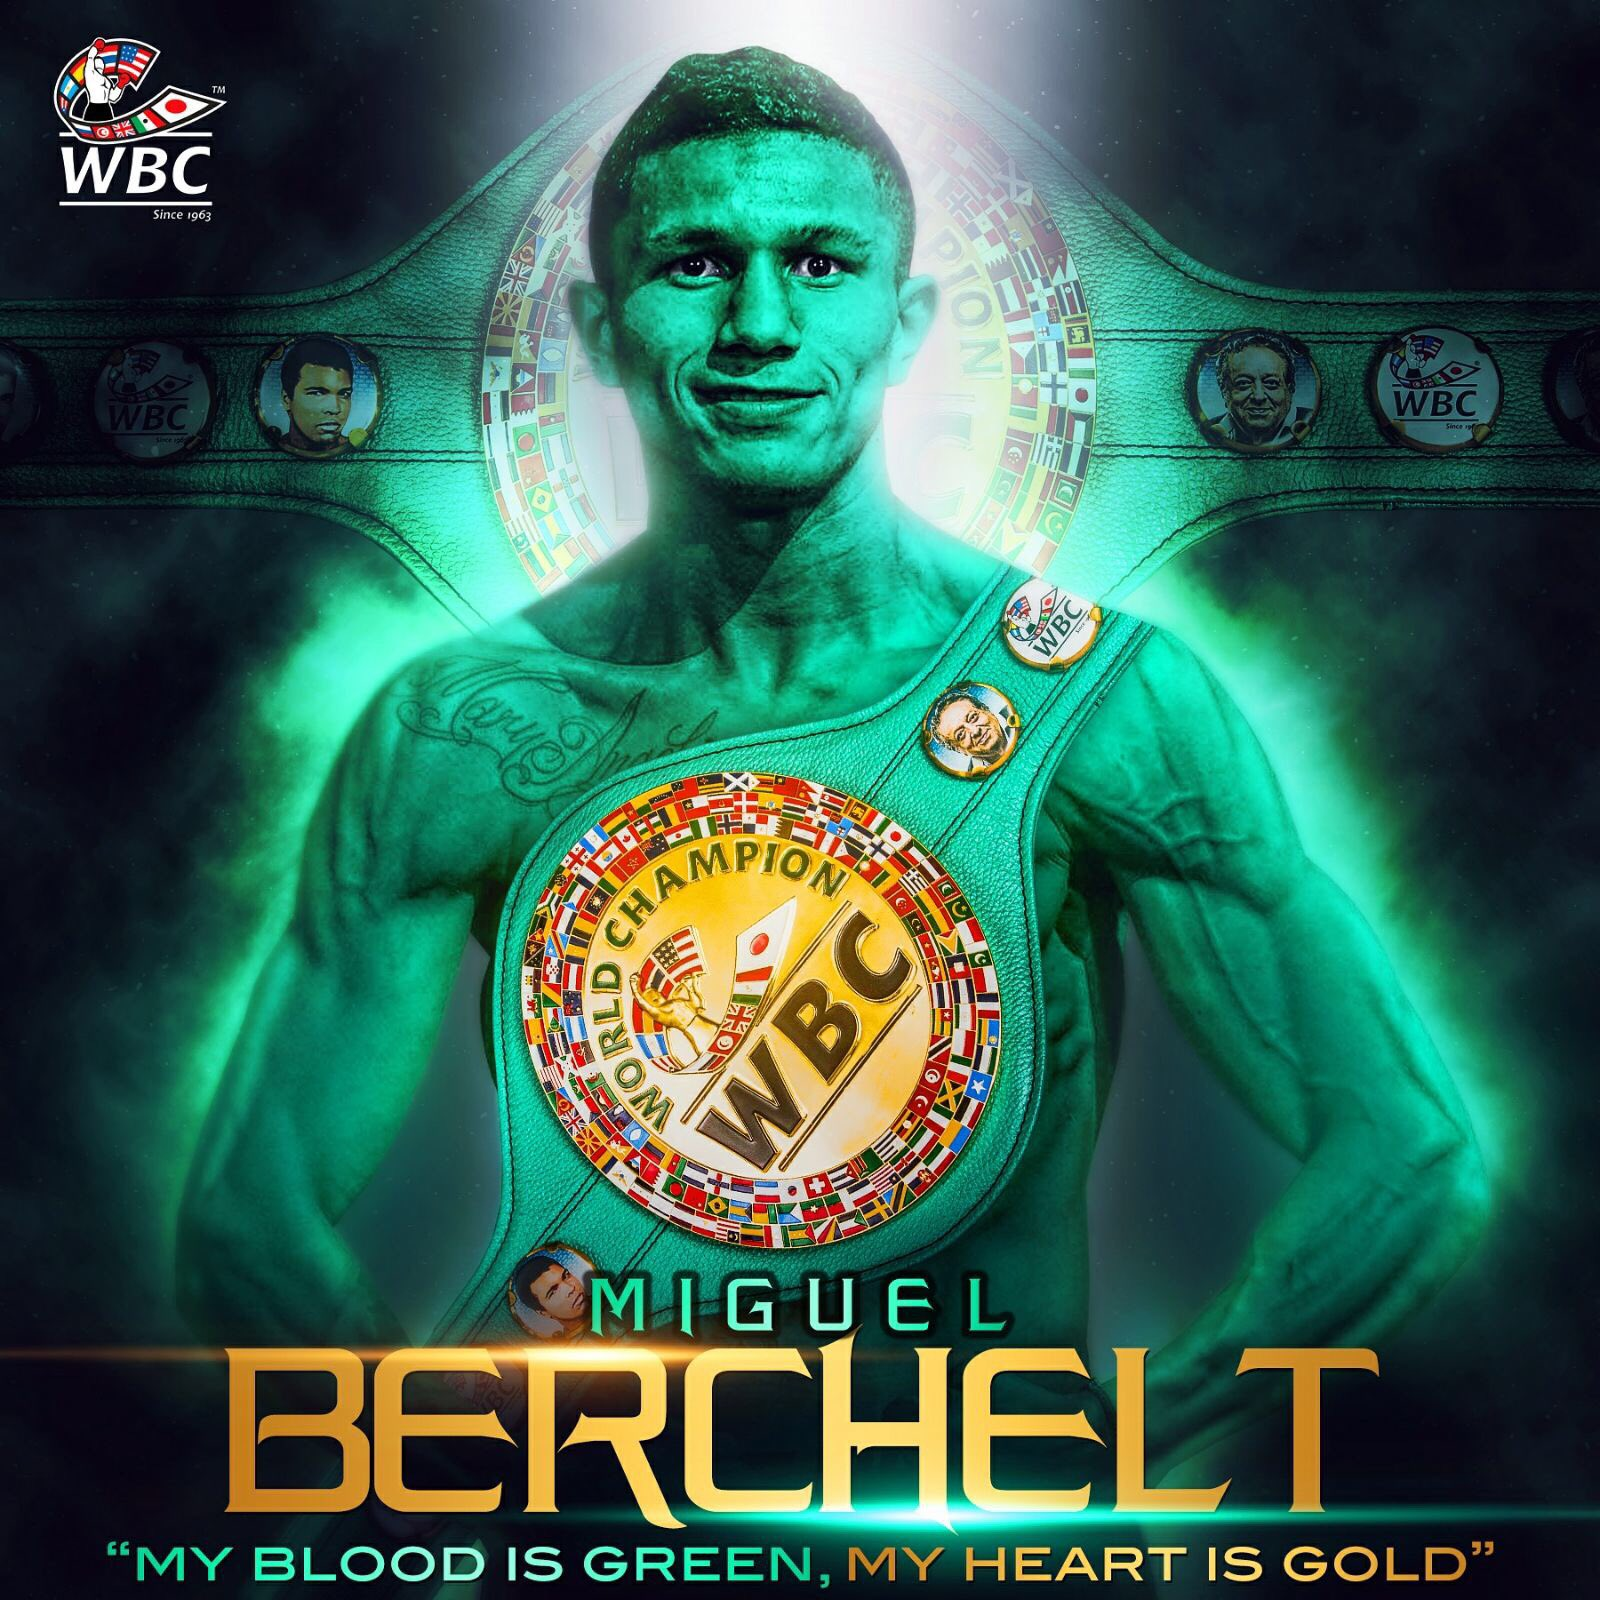 berchelt wbc art